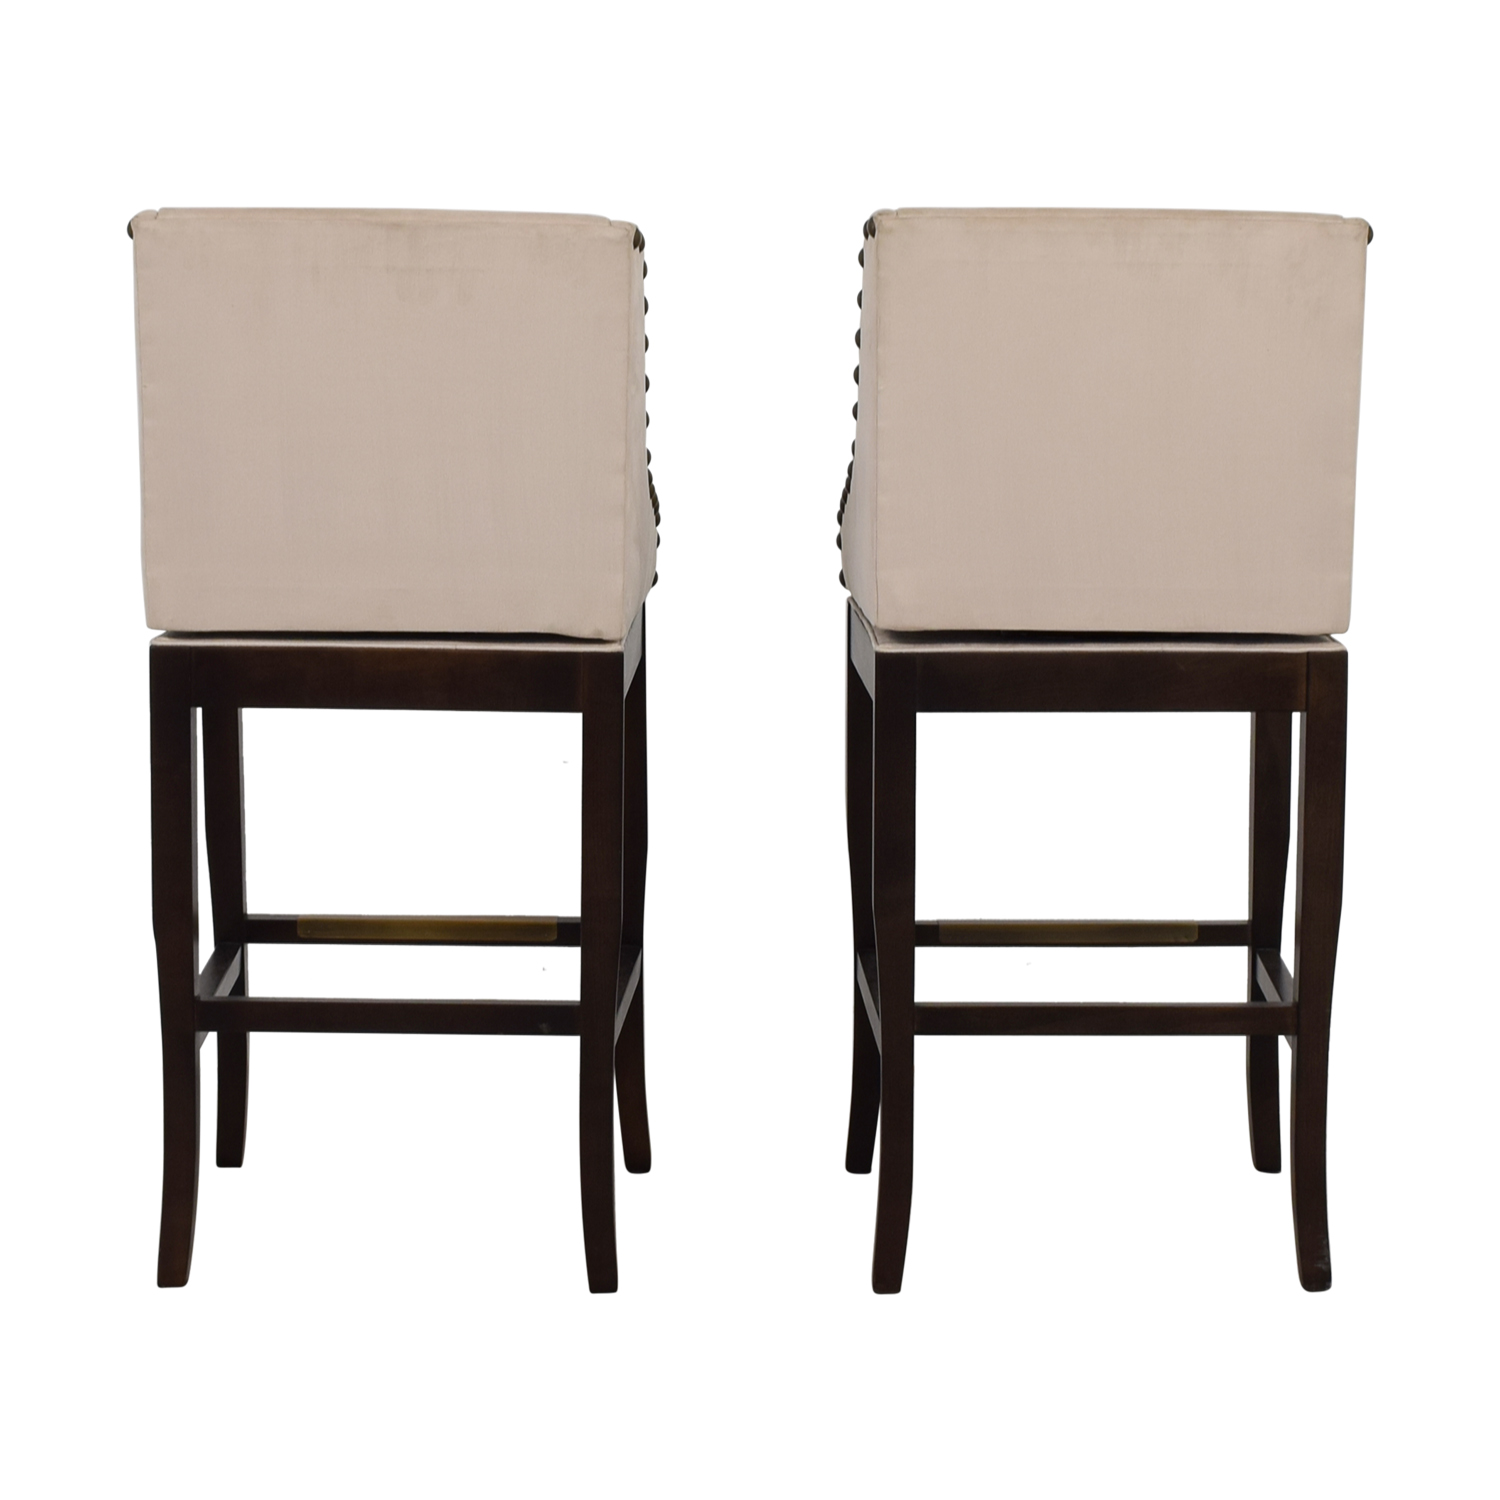 buy Ballard Designs Marcello Beige Nailhead Bar Stools Ballard Designs Chairs